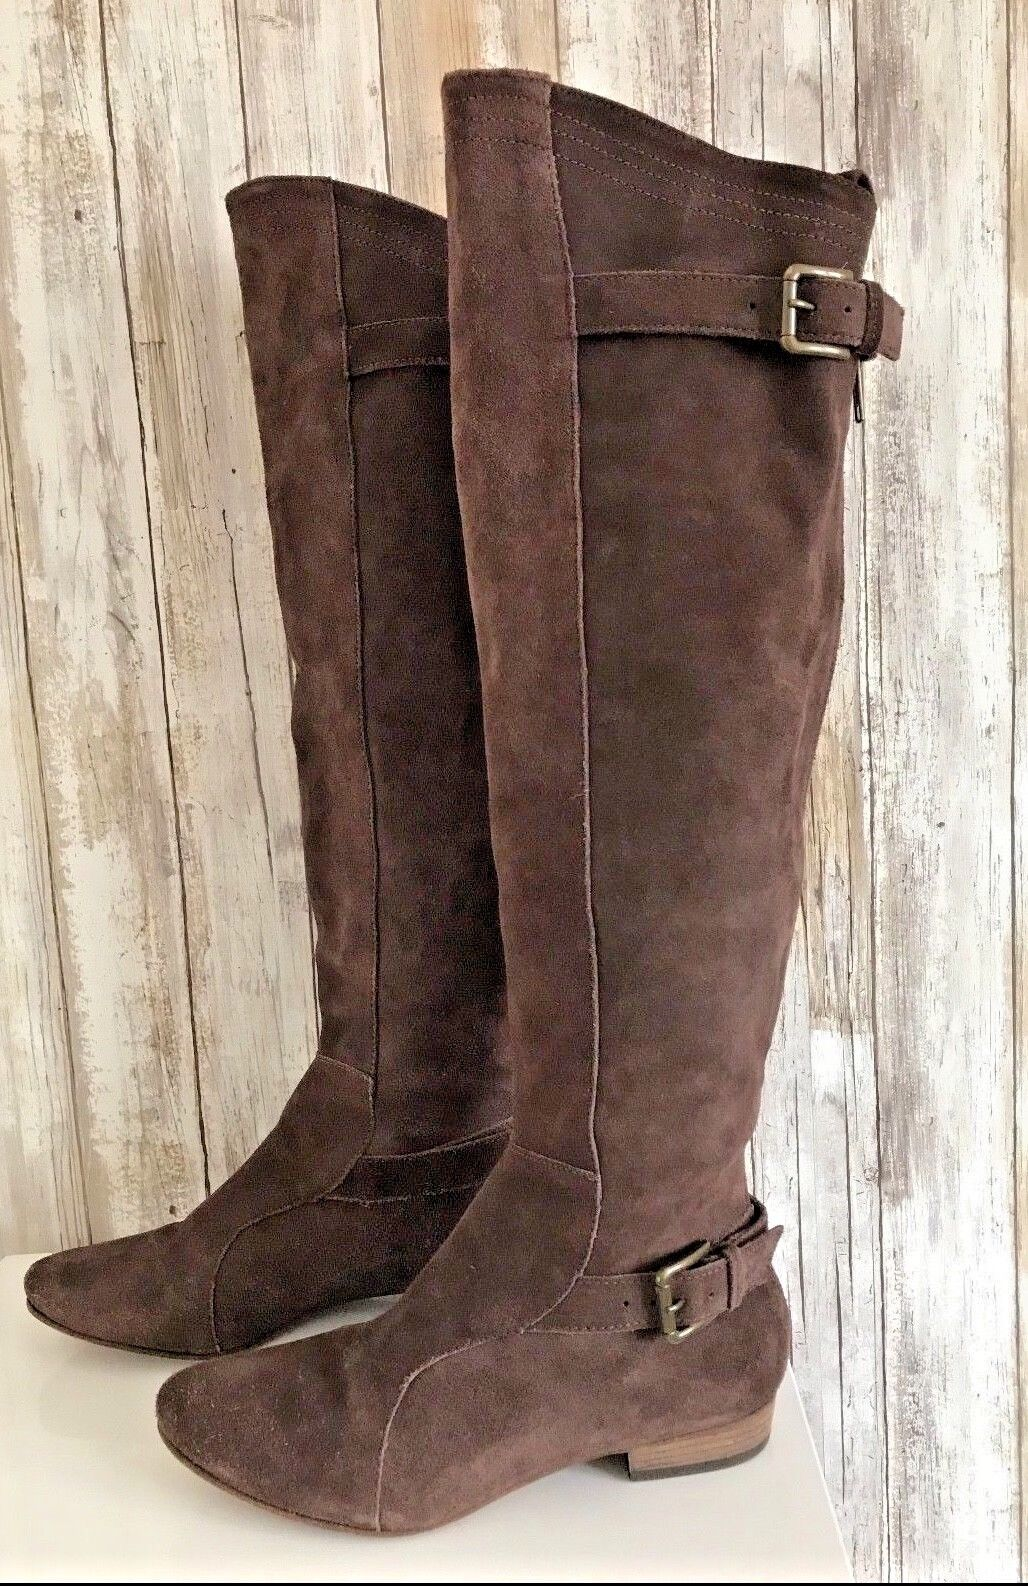 Joie Many Roads Over The Knee braun Suede Flat Stiefel Buckle Zipper 37 6.5 RARE